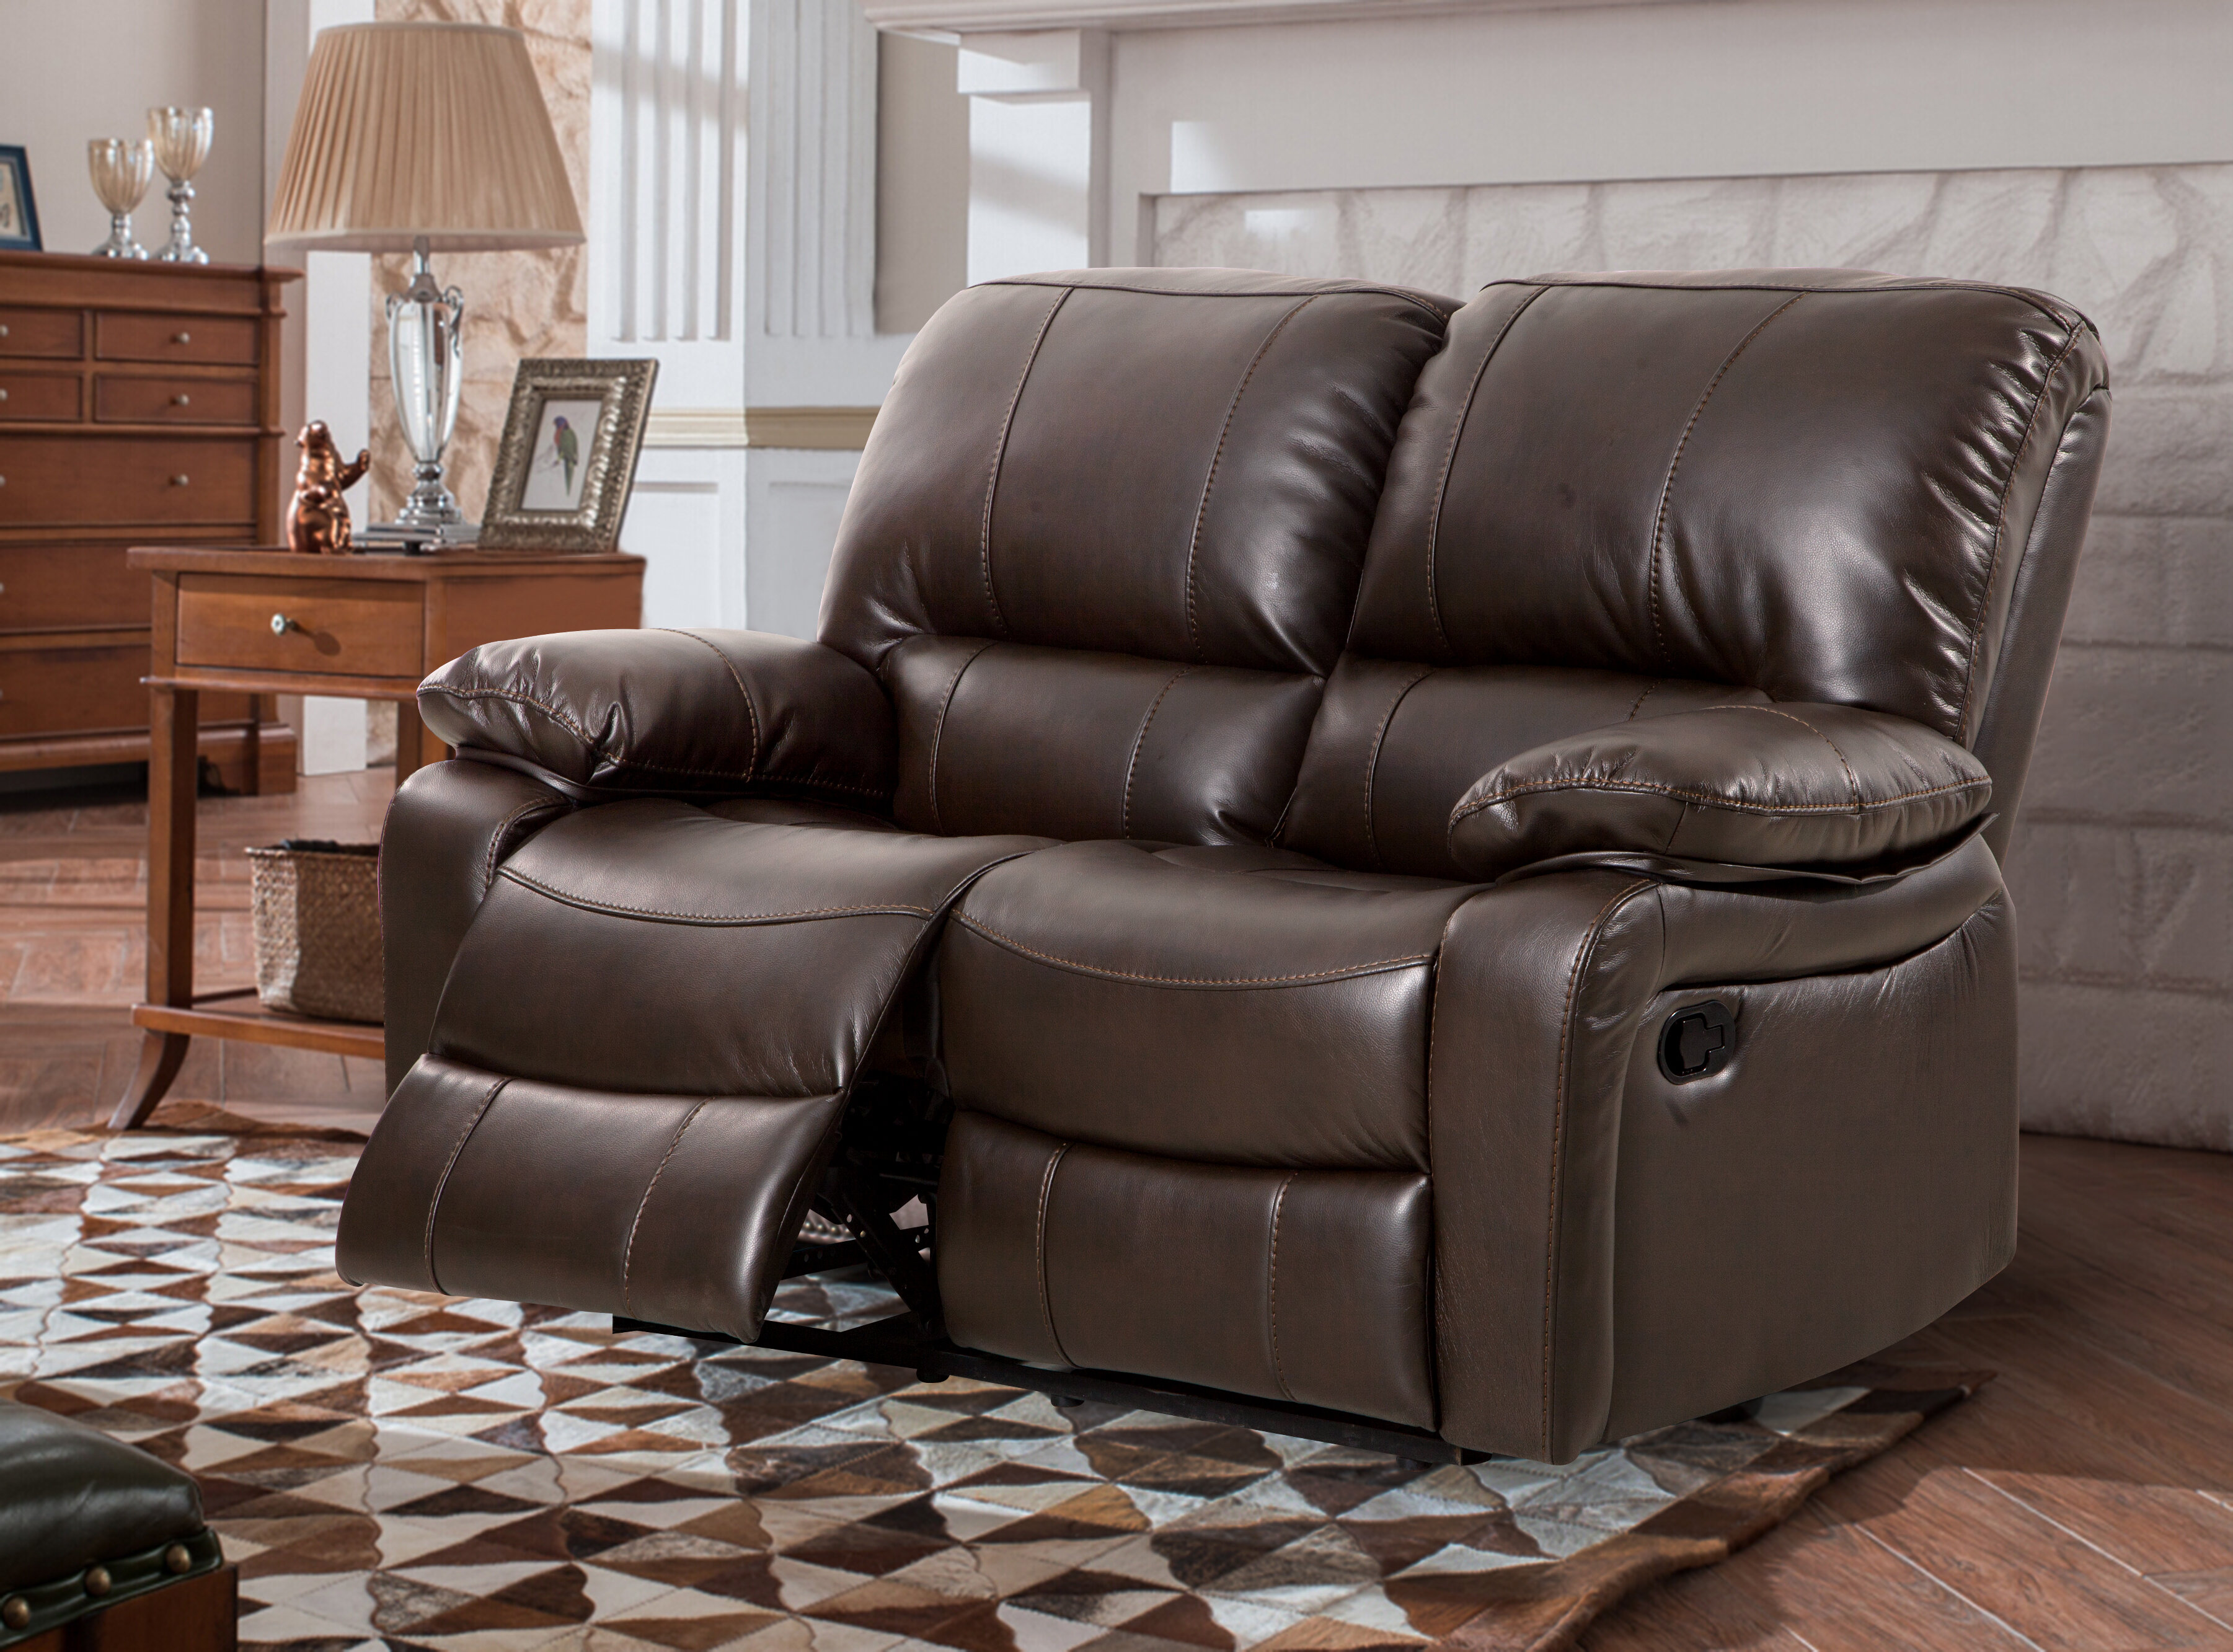 Awesome Koval Breathing Reclining Loveseat Machost Co Dining Chair Design Ideas Machostcouk